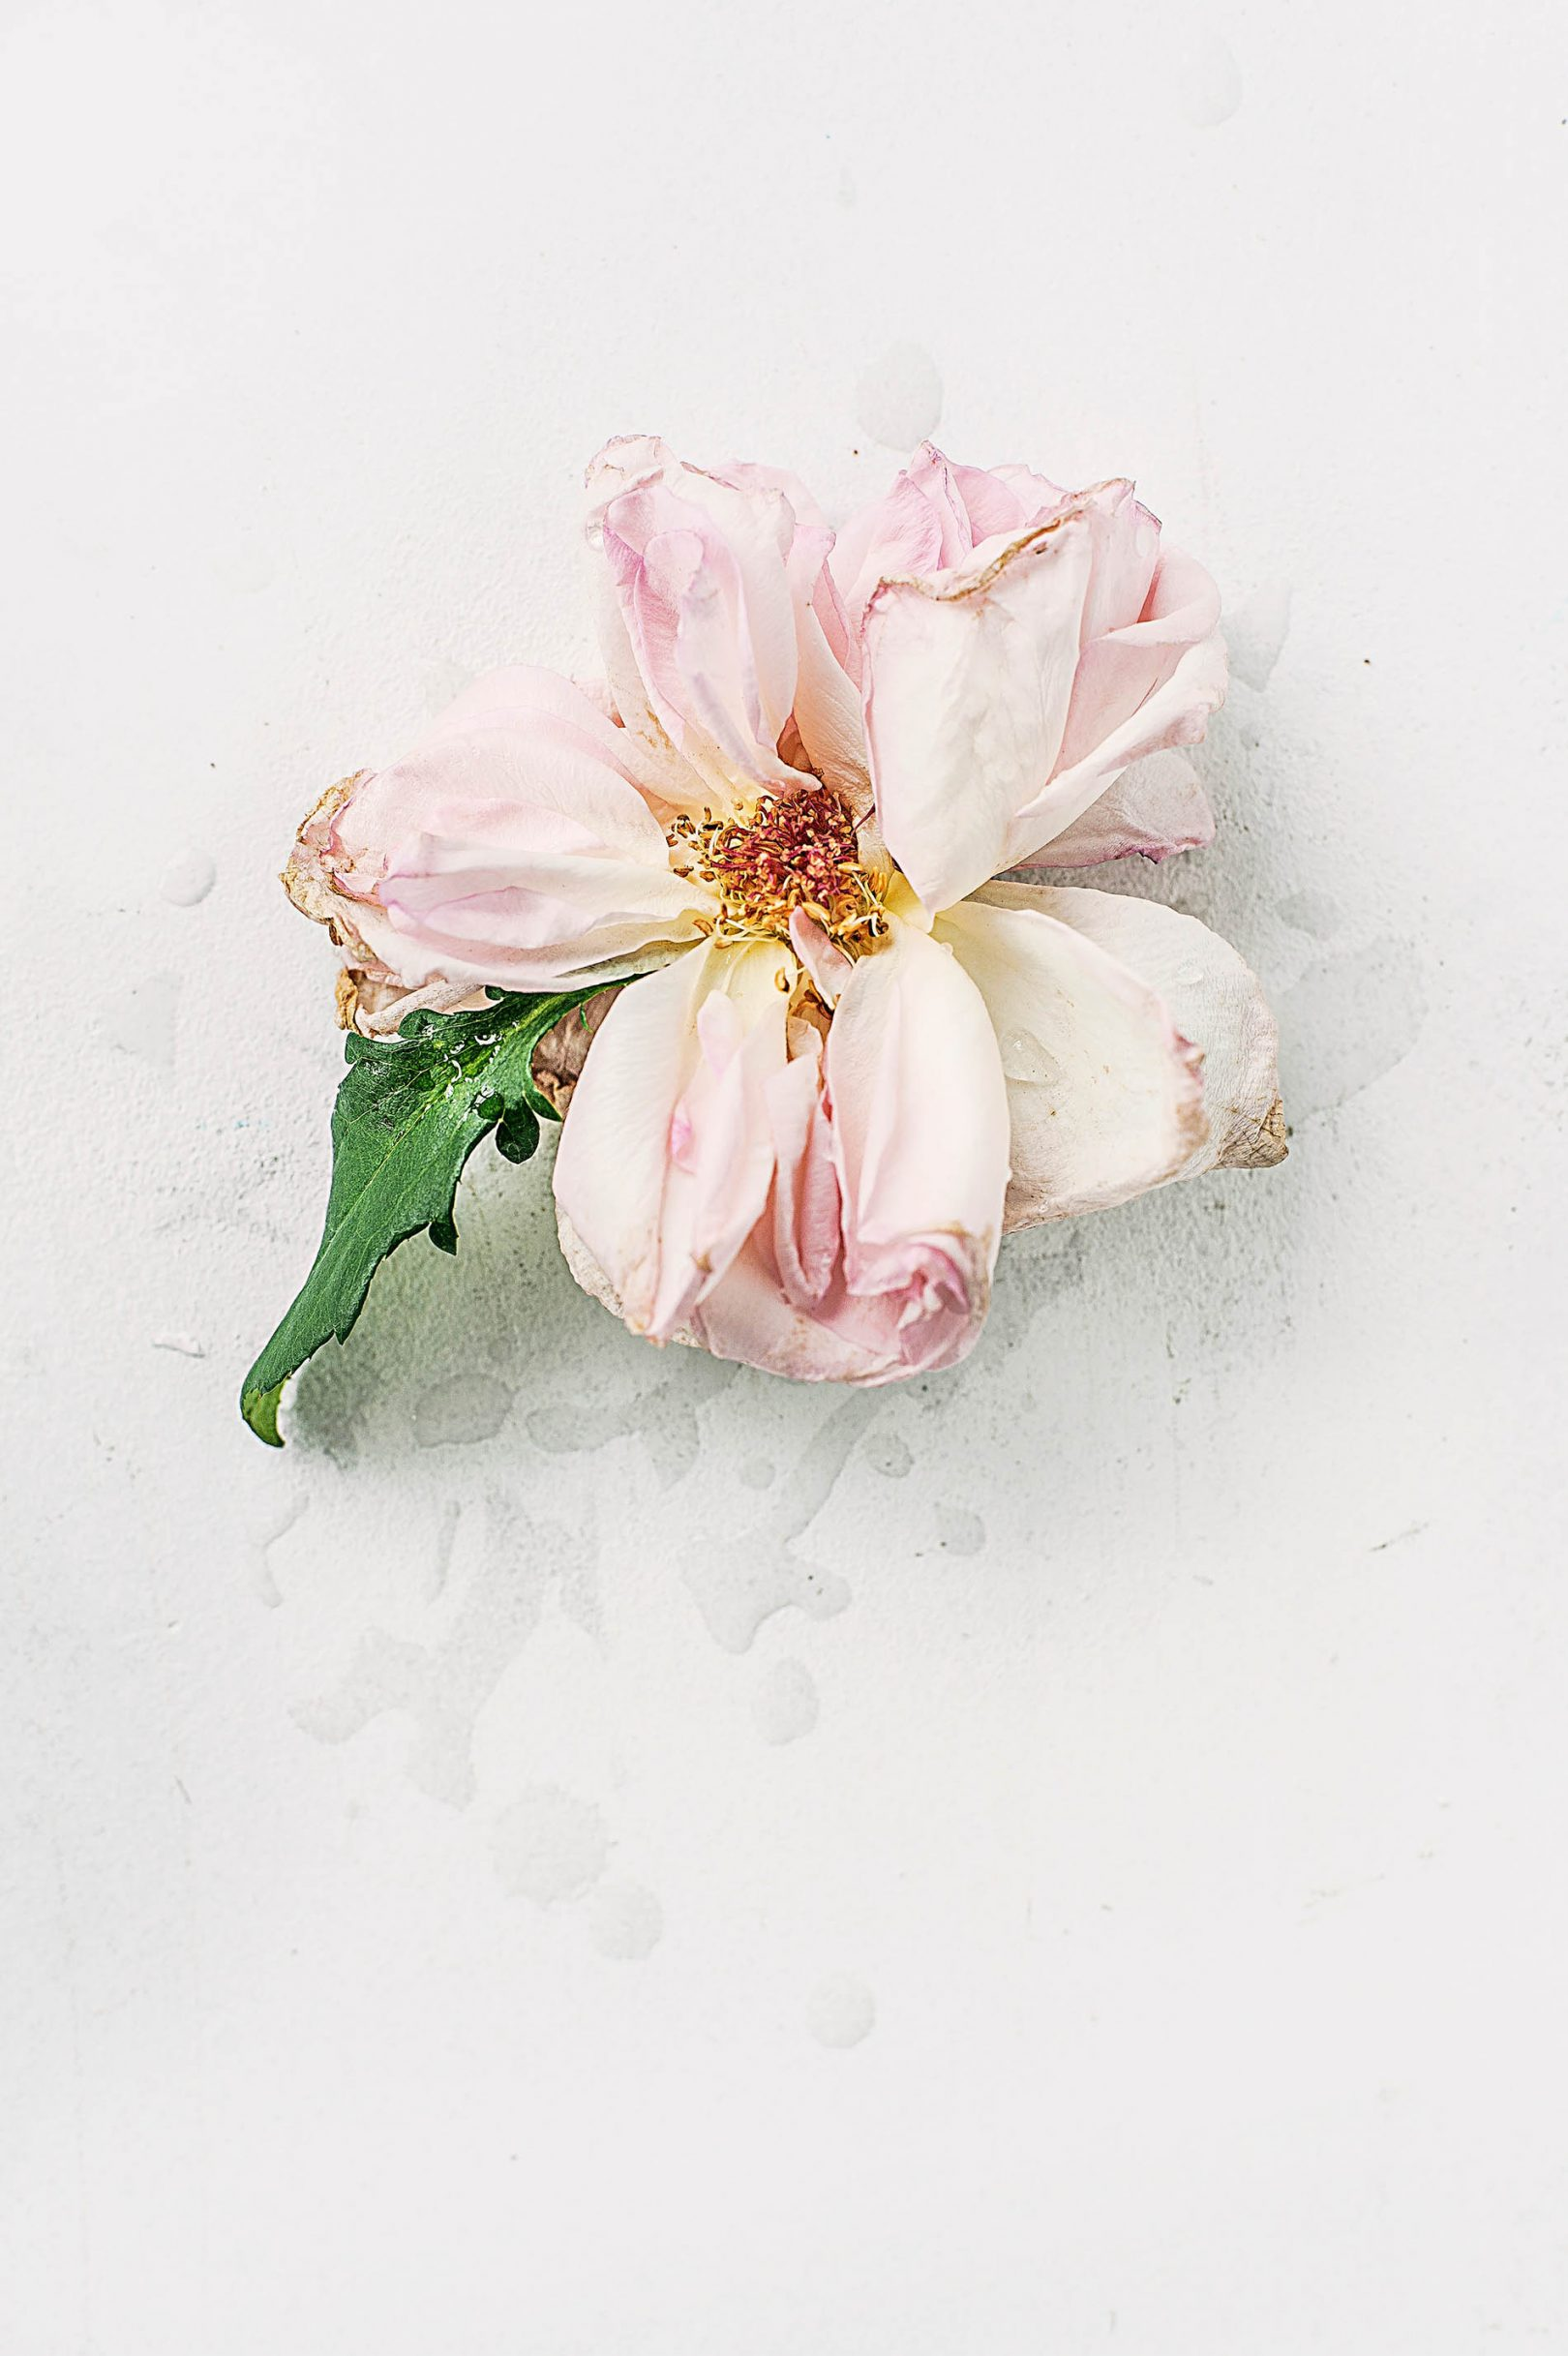 bloom-blossom-dried-1077620